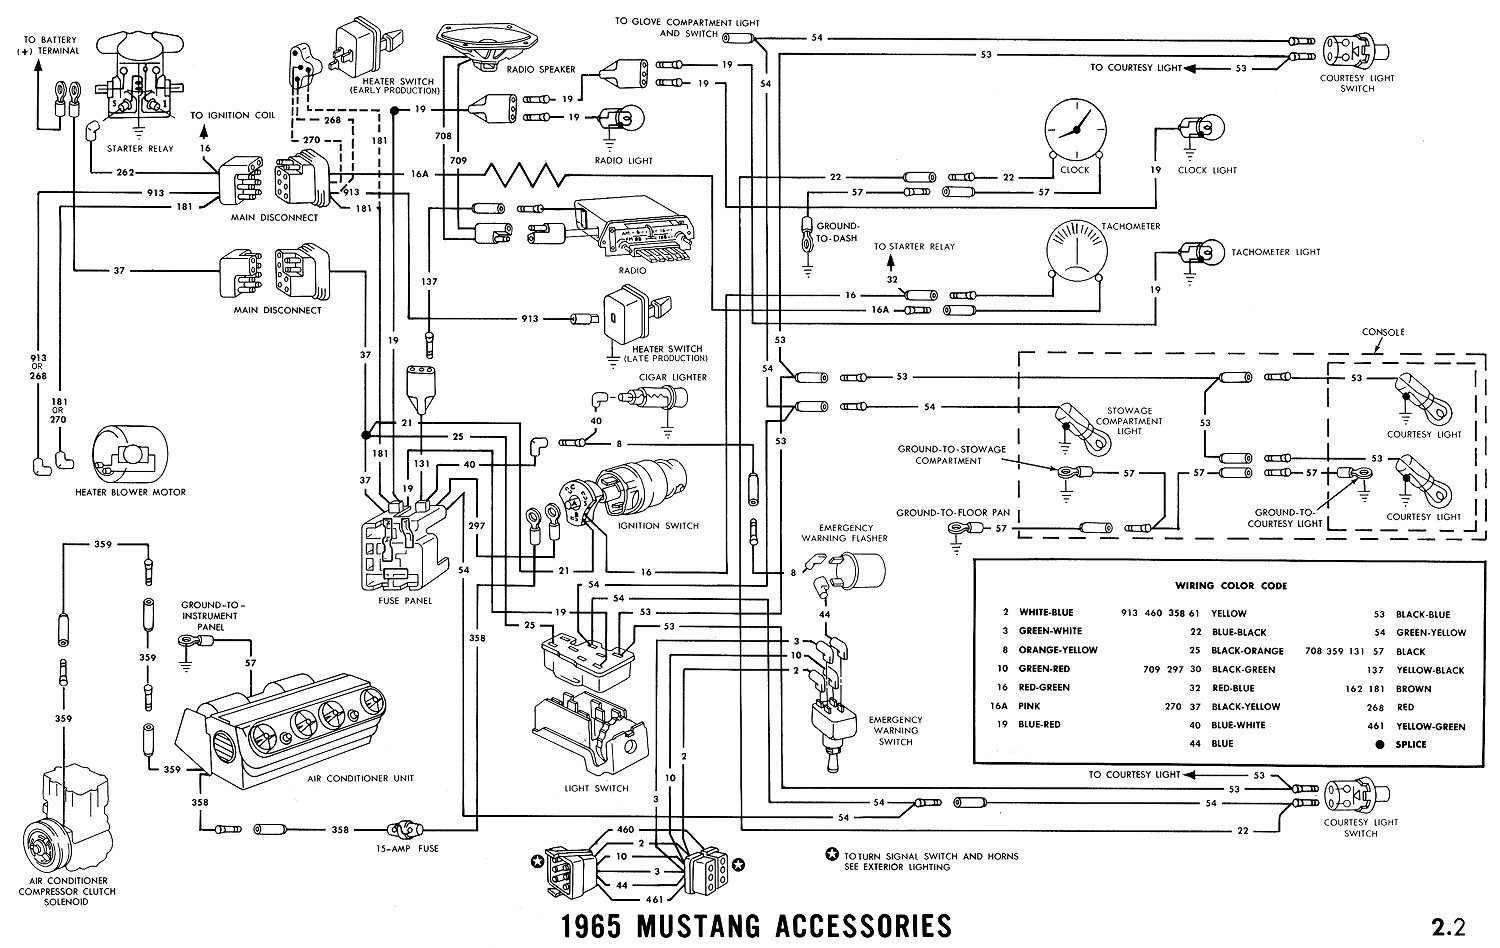 2006 mustang wiring diagram 2006 image wiring diagram 2003 mustang co wiring diagram 2003 auto wiring diagram schematic on 2006 mustang wiring diagram